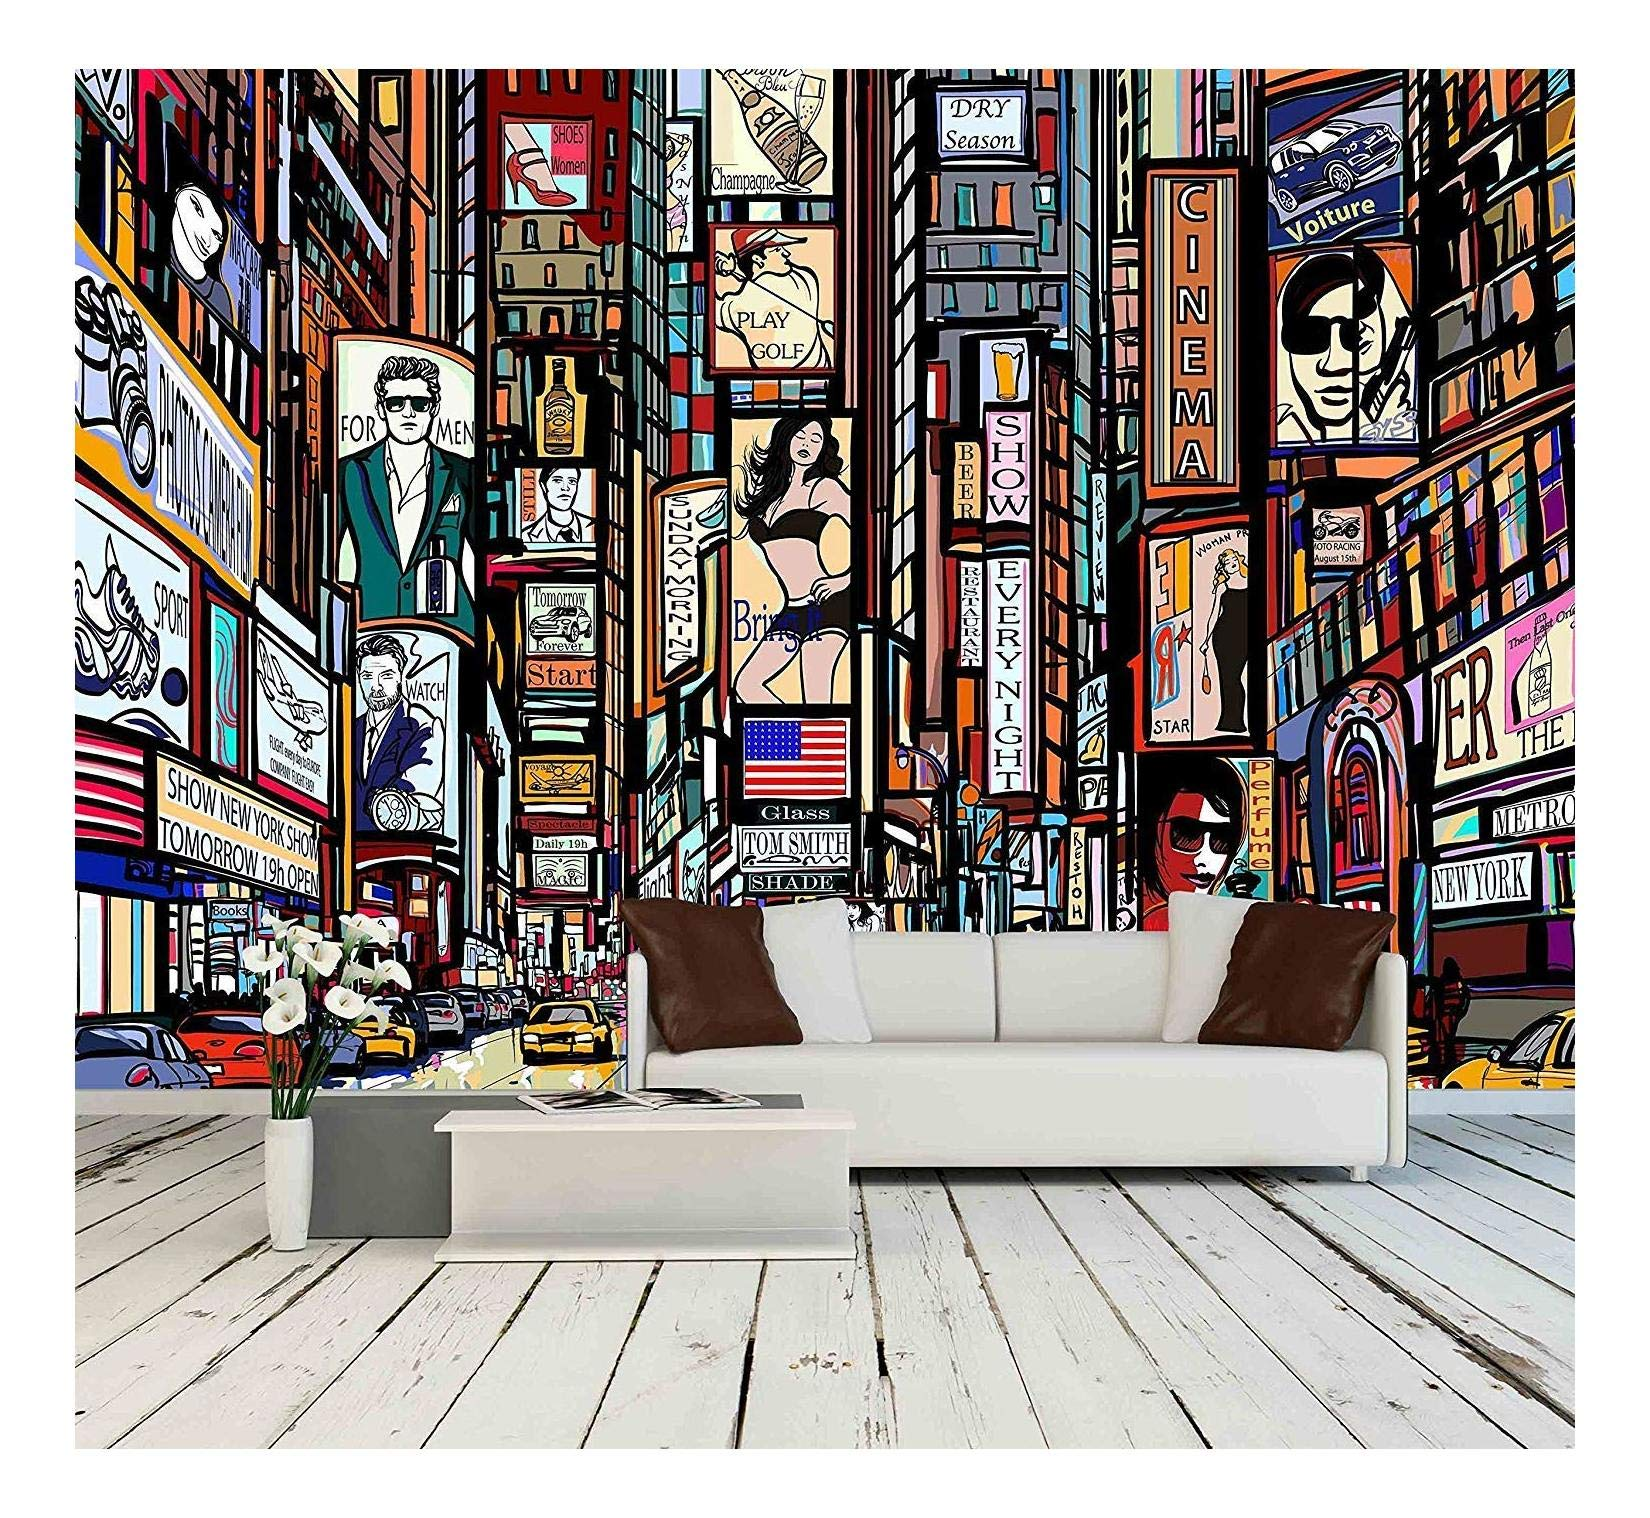 wall26 - Illustration of a Street in New York City - Removable Wall Mural | Self-Adhesive Large Wallpaper - 100x144 inches by wall26 (Image #1)